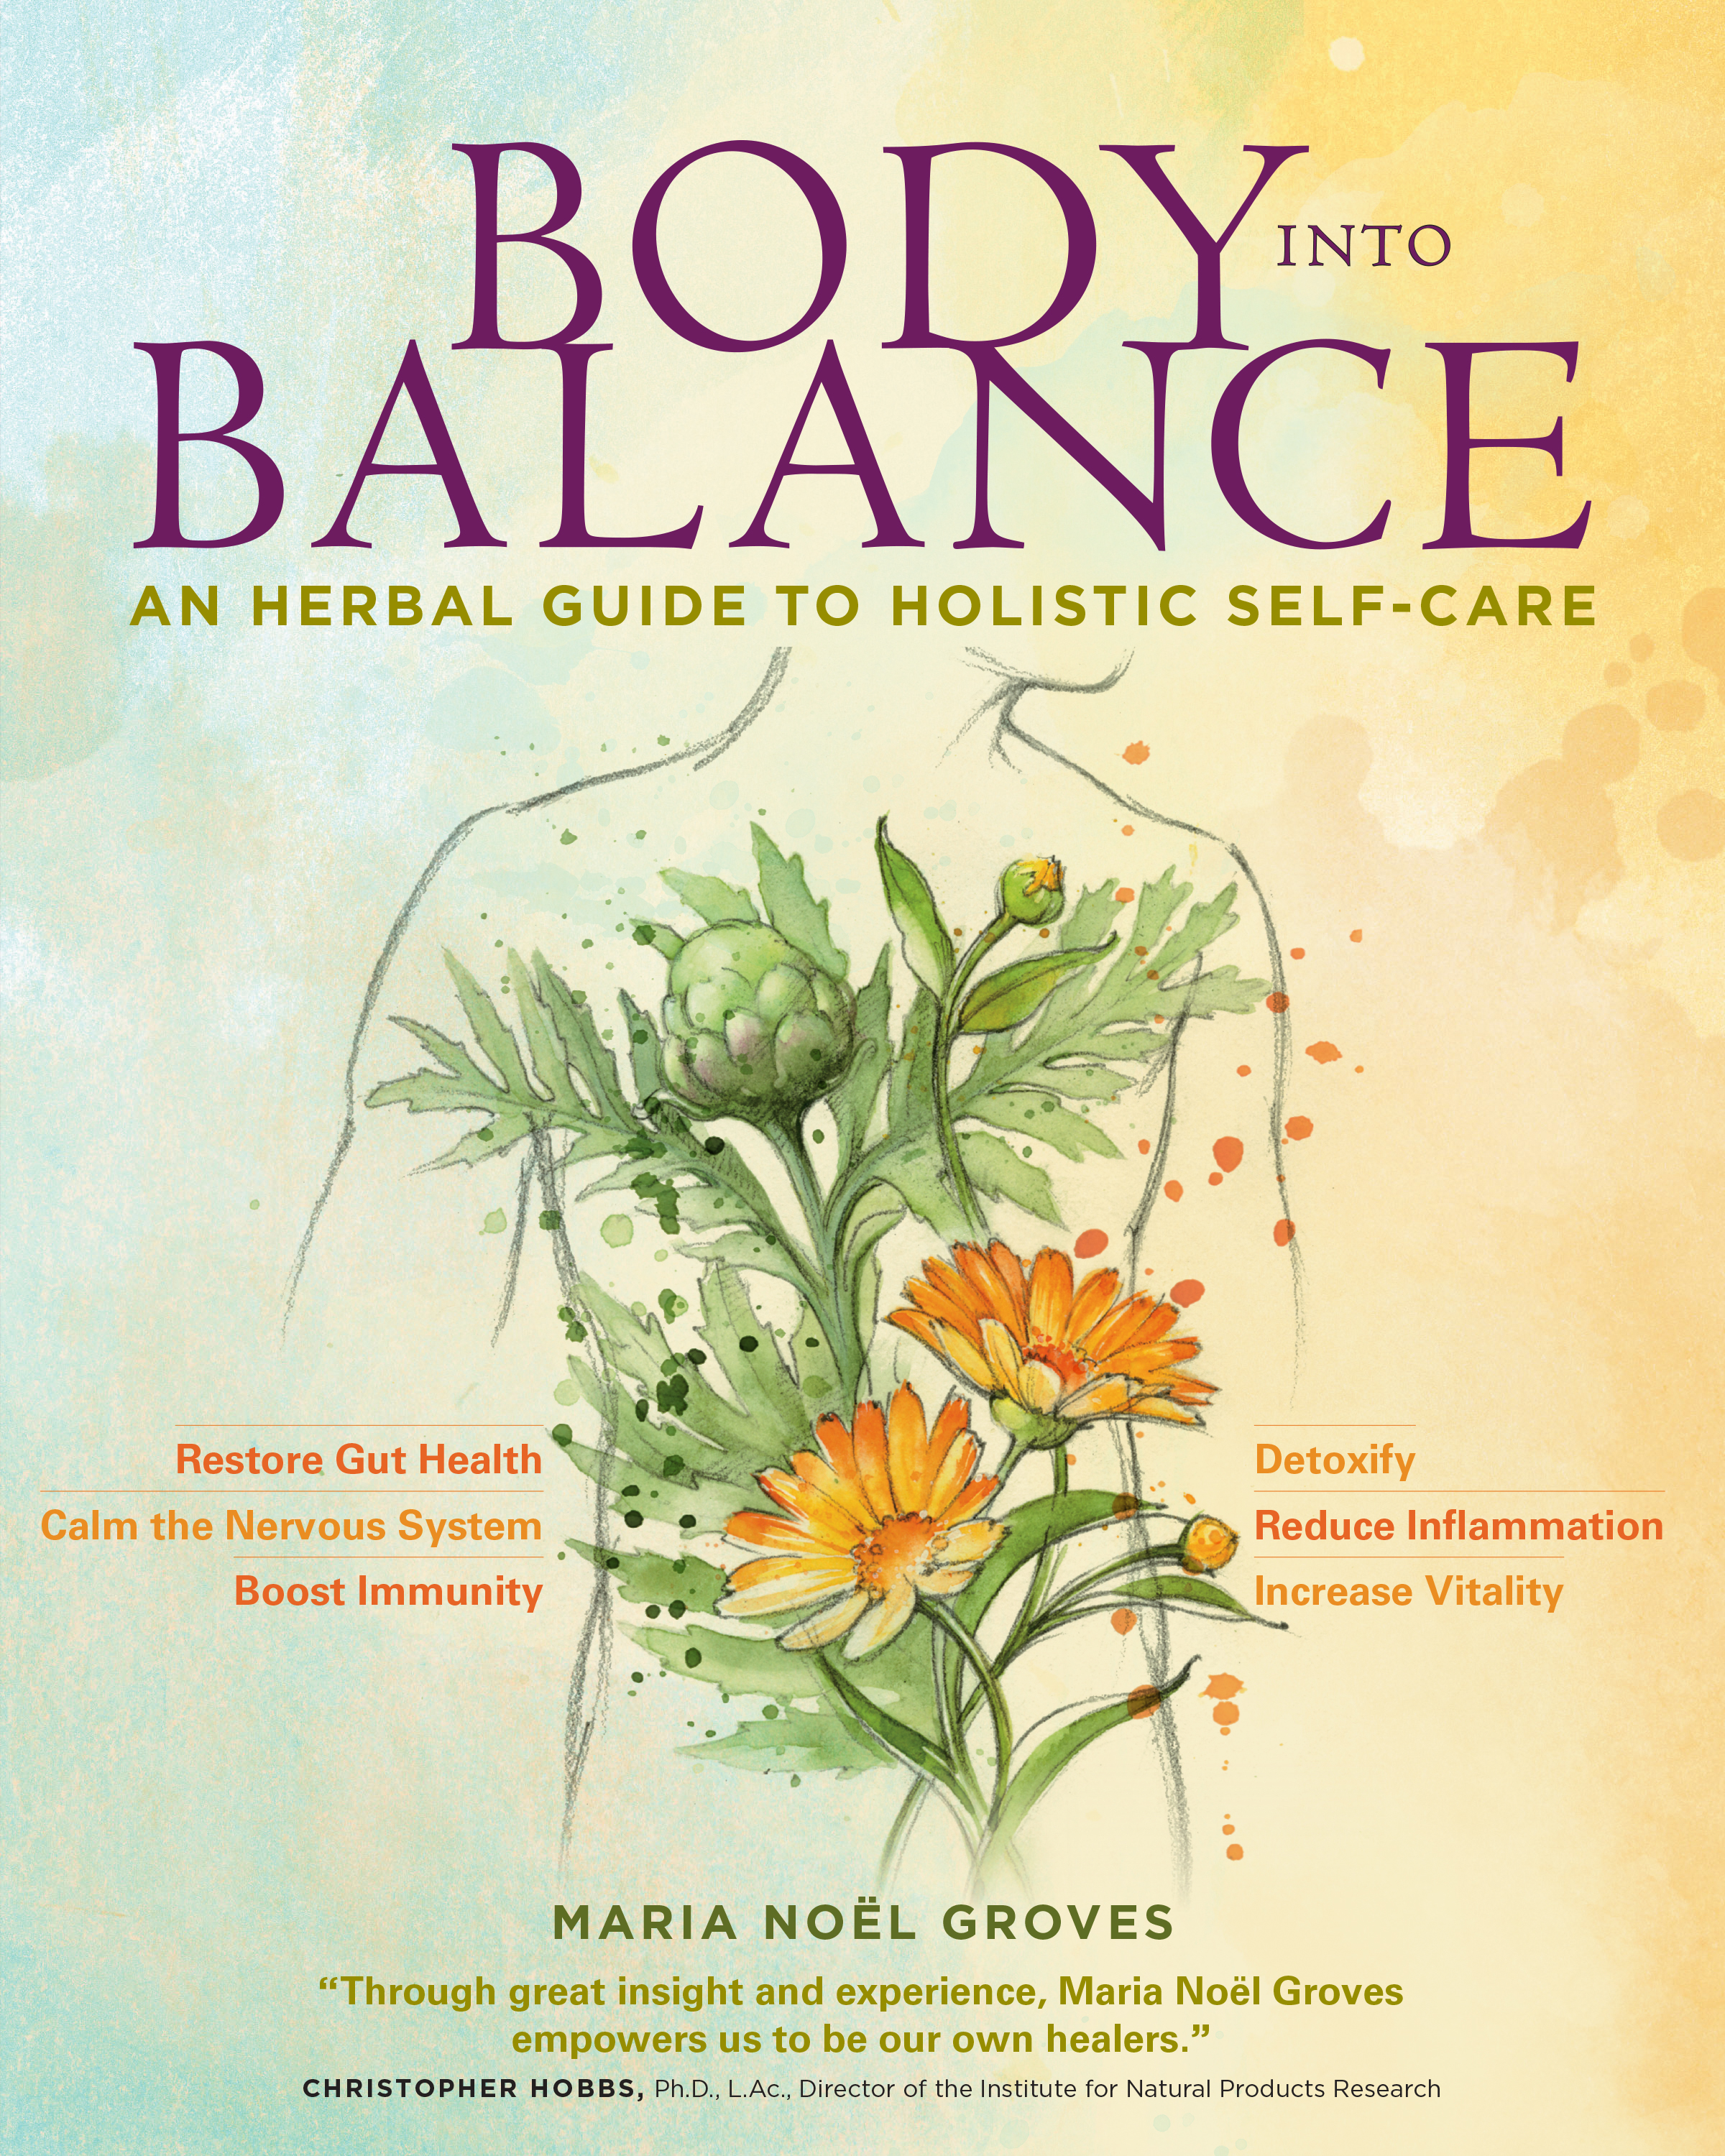 Body into Balance An Herbal Guide to Holistic Self-Care - Maria Noël Groves